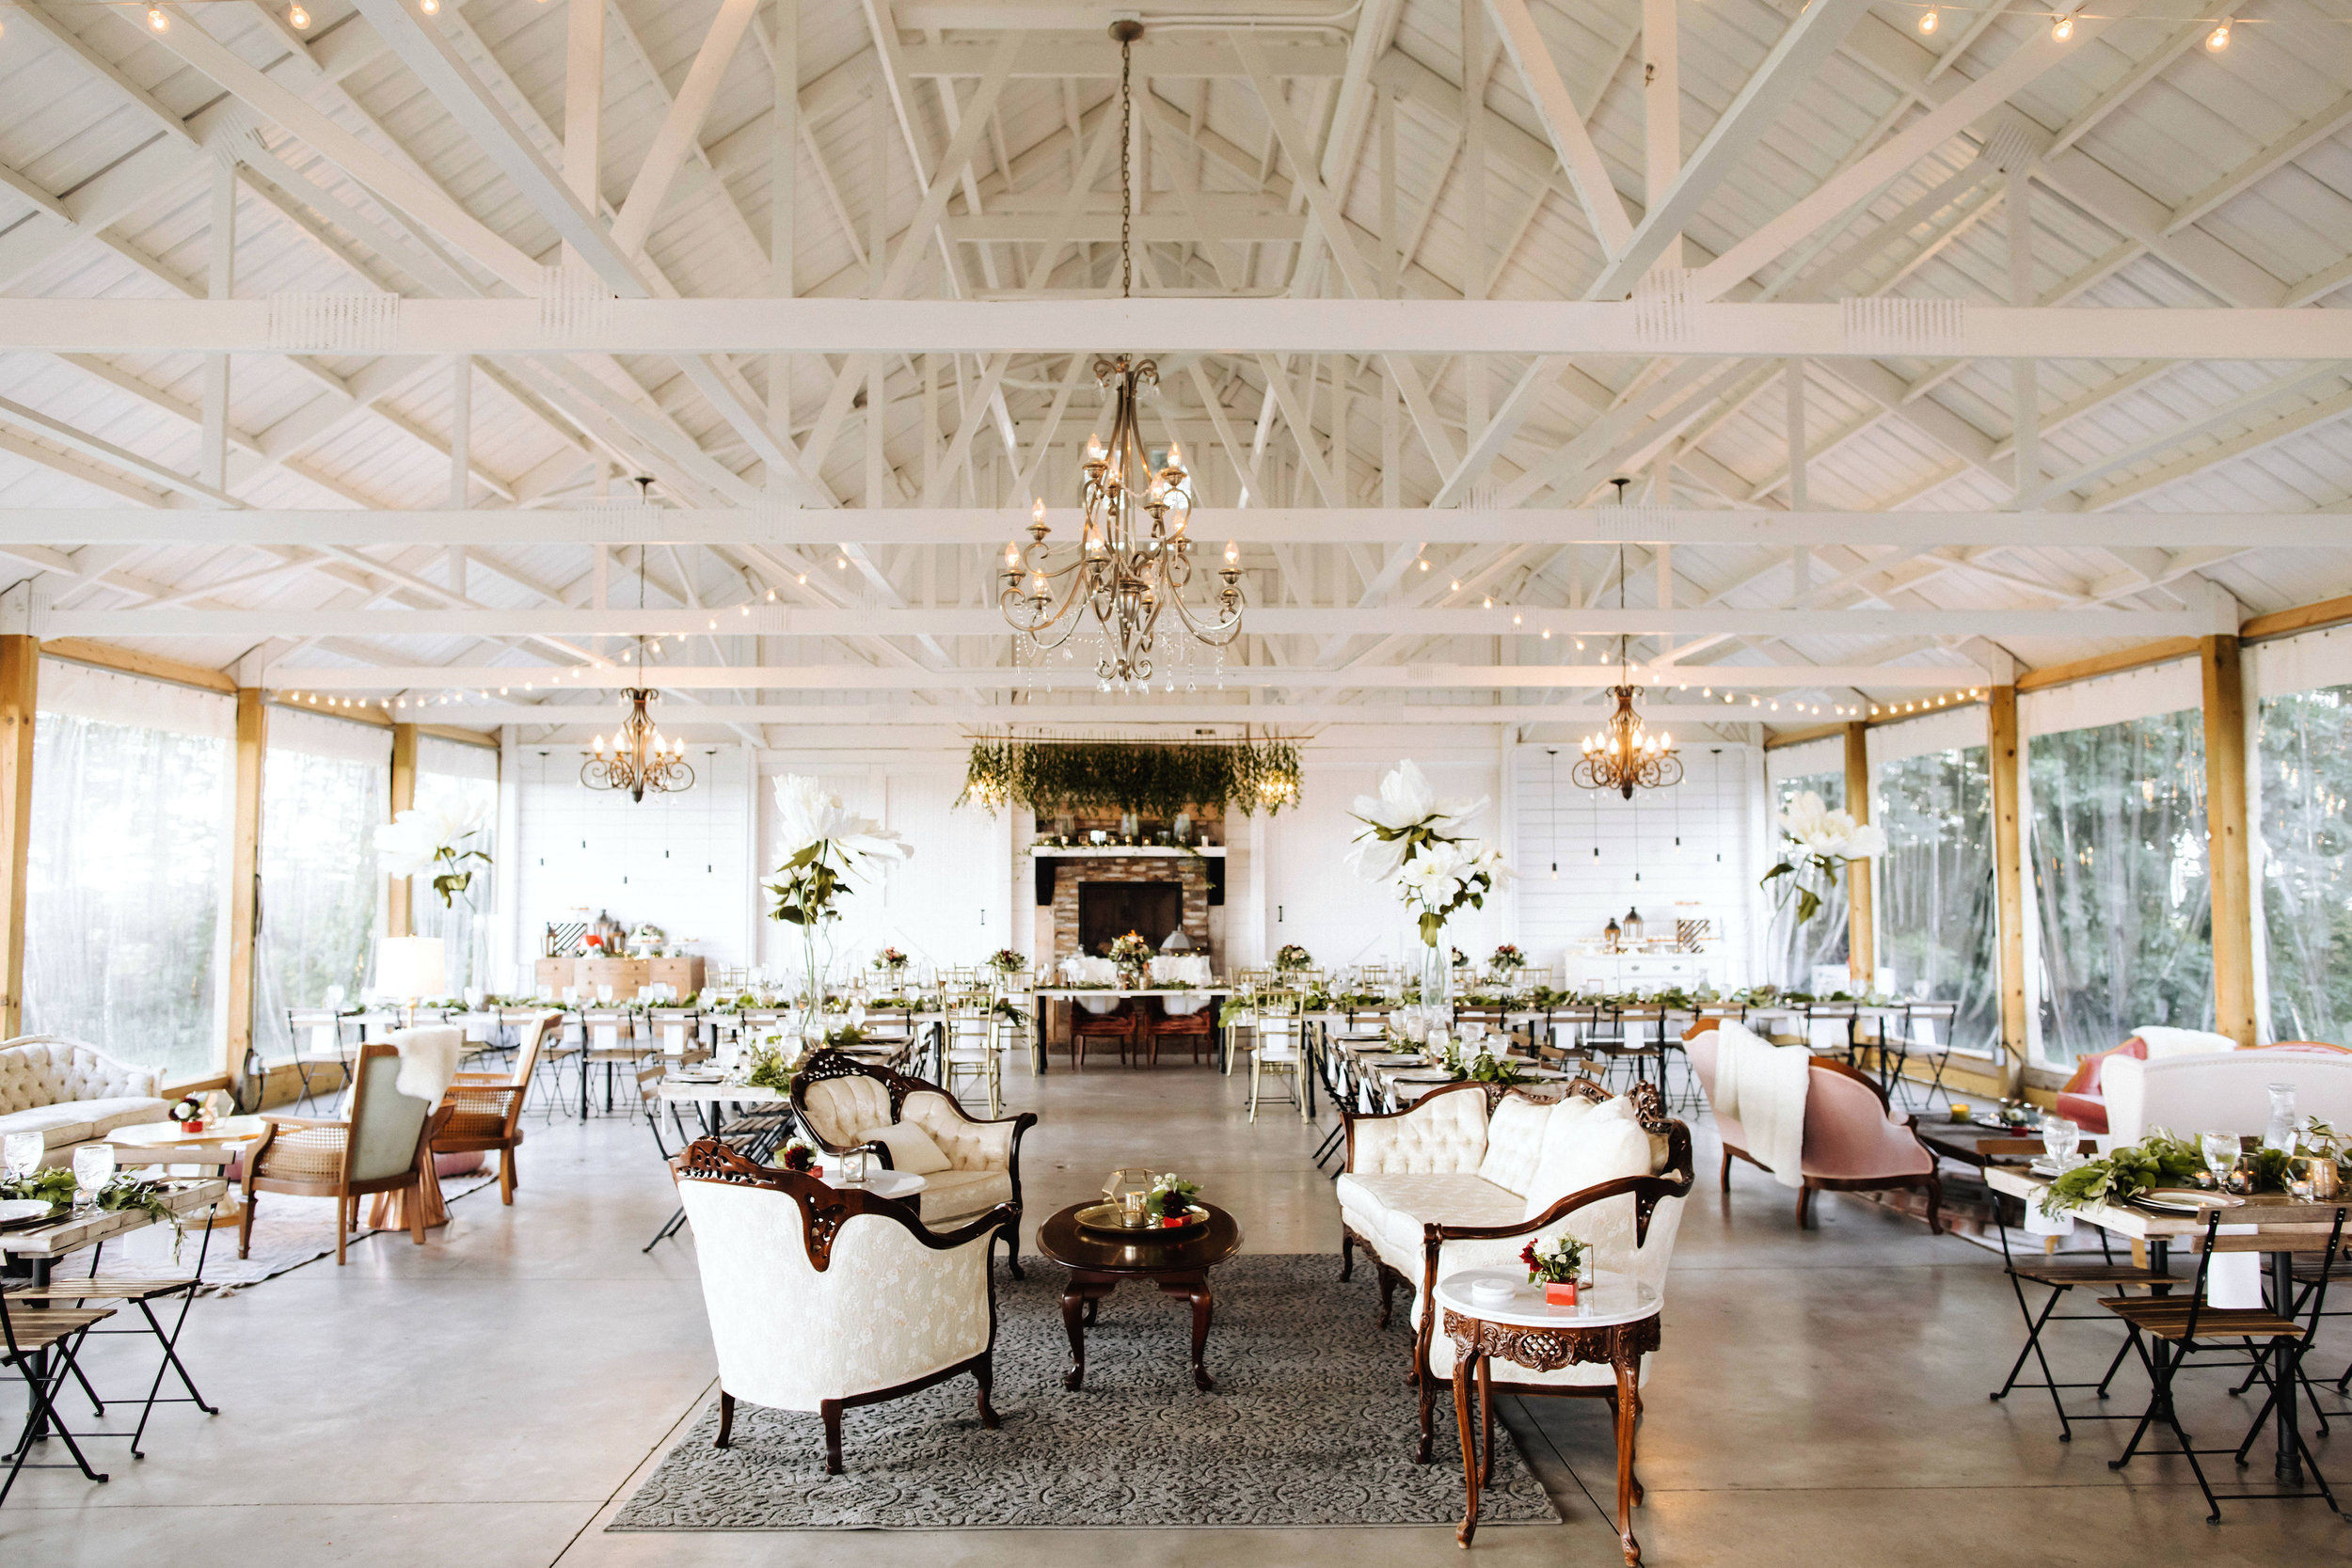 The signature - Book our entire rental collection with one click & be the ultimate host. From your seating chart display to table decor to multiple lounges, this package includes it all & eliminates your stress.Photo: Matt Lien